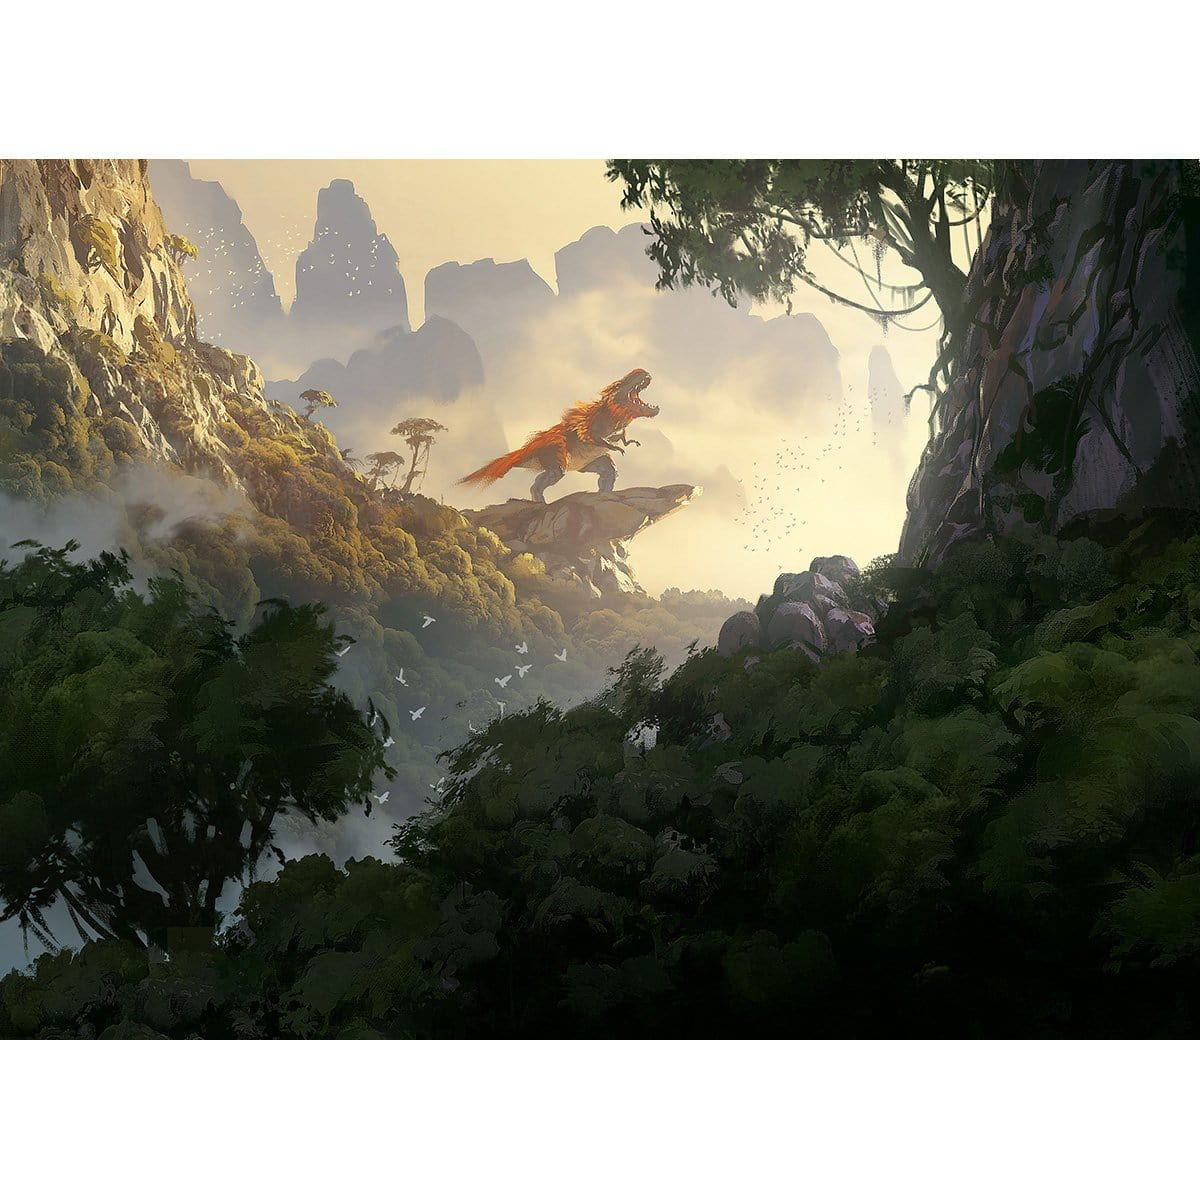 Rootbound Crag Print - Print - Original Magic Art - Accessories for Magic the Gathering and other card games